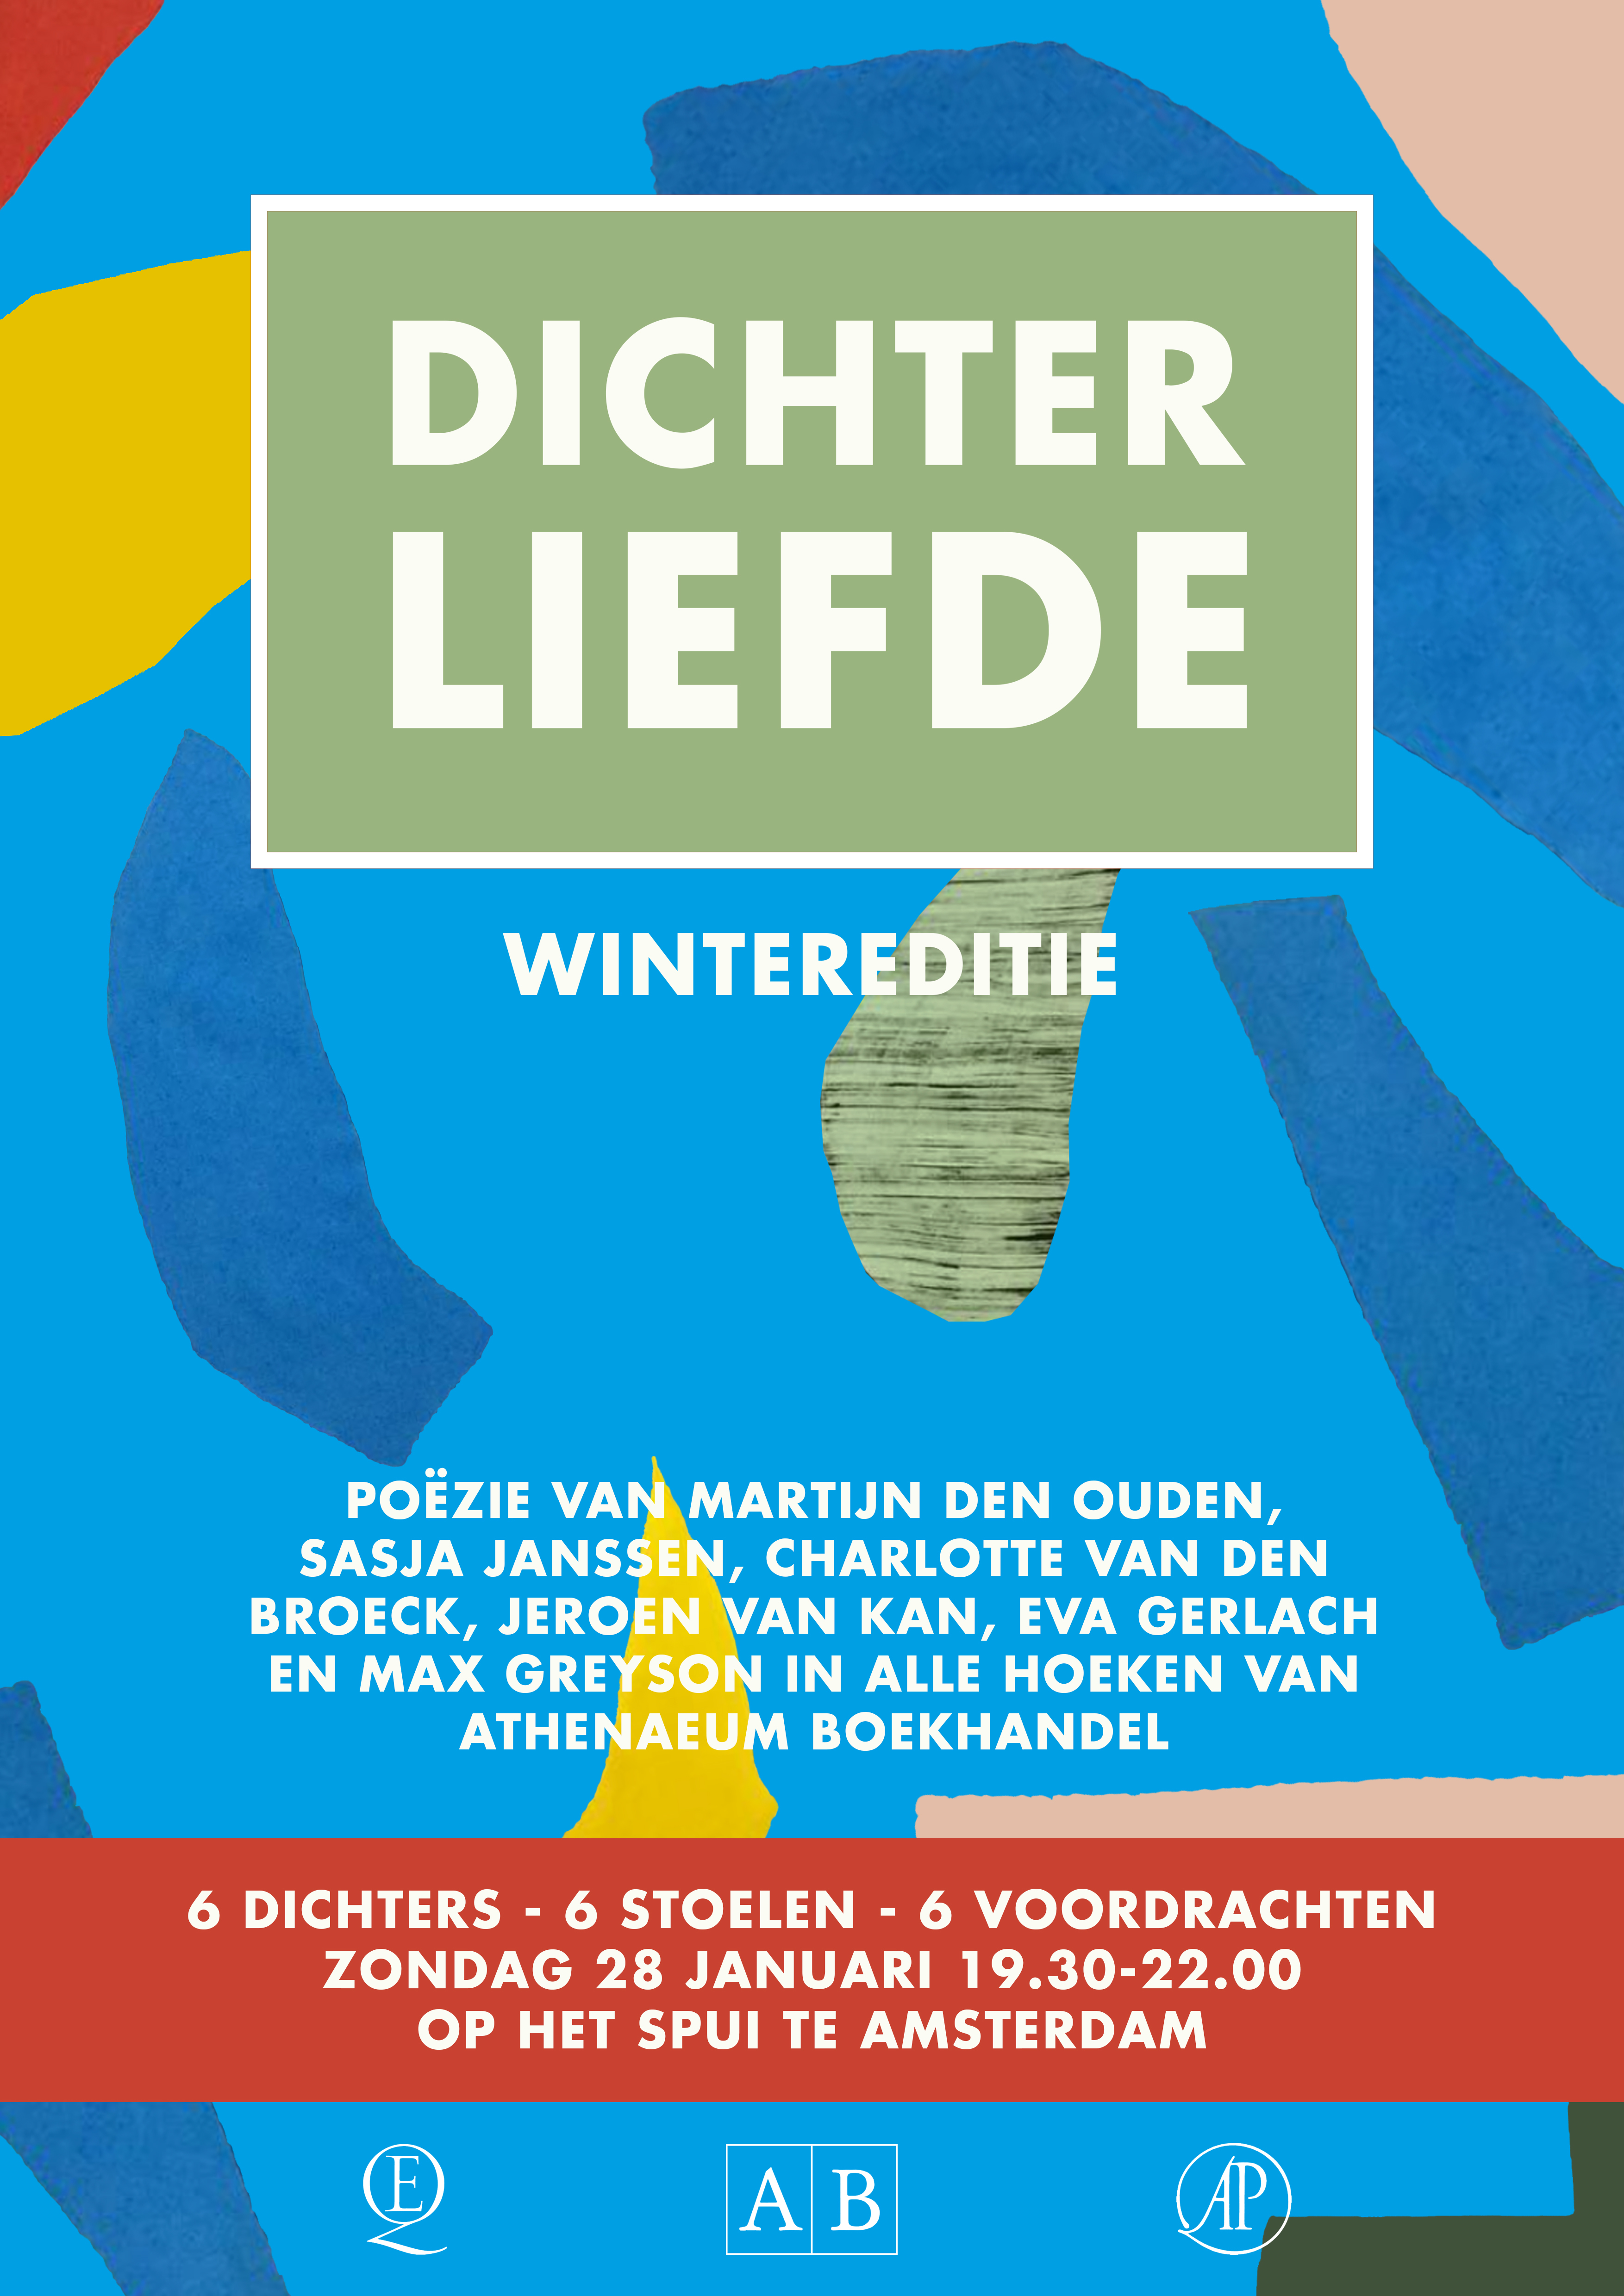 Dichterliefde: de wintereditie